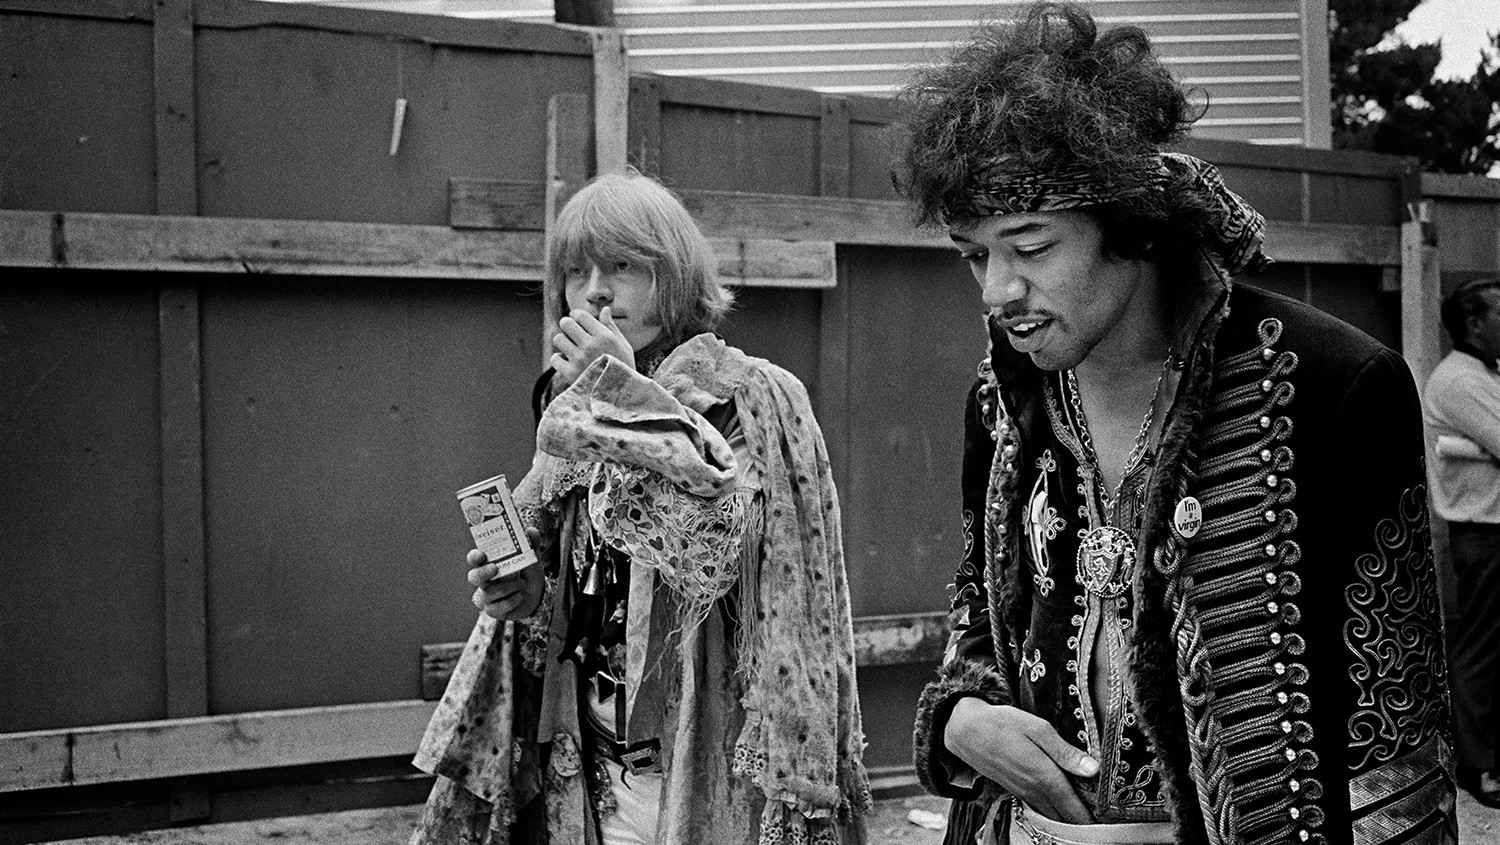 The Rolling Stones guitarist Brian Jones (left) and Hendrix backstage at the Monterey International Pop Festival.